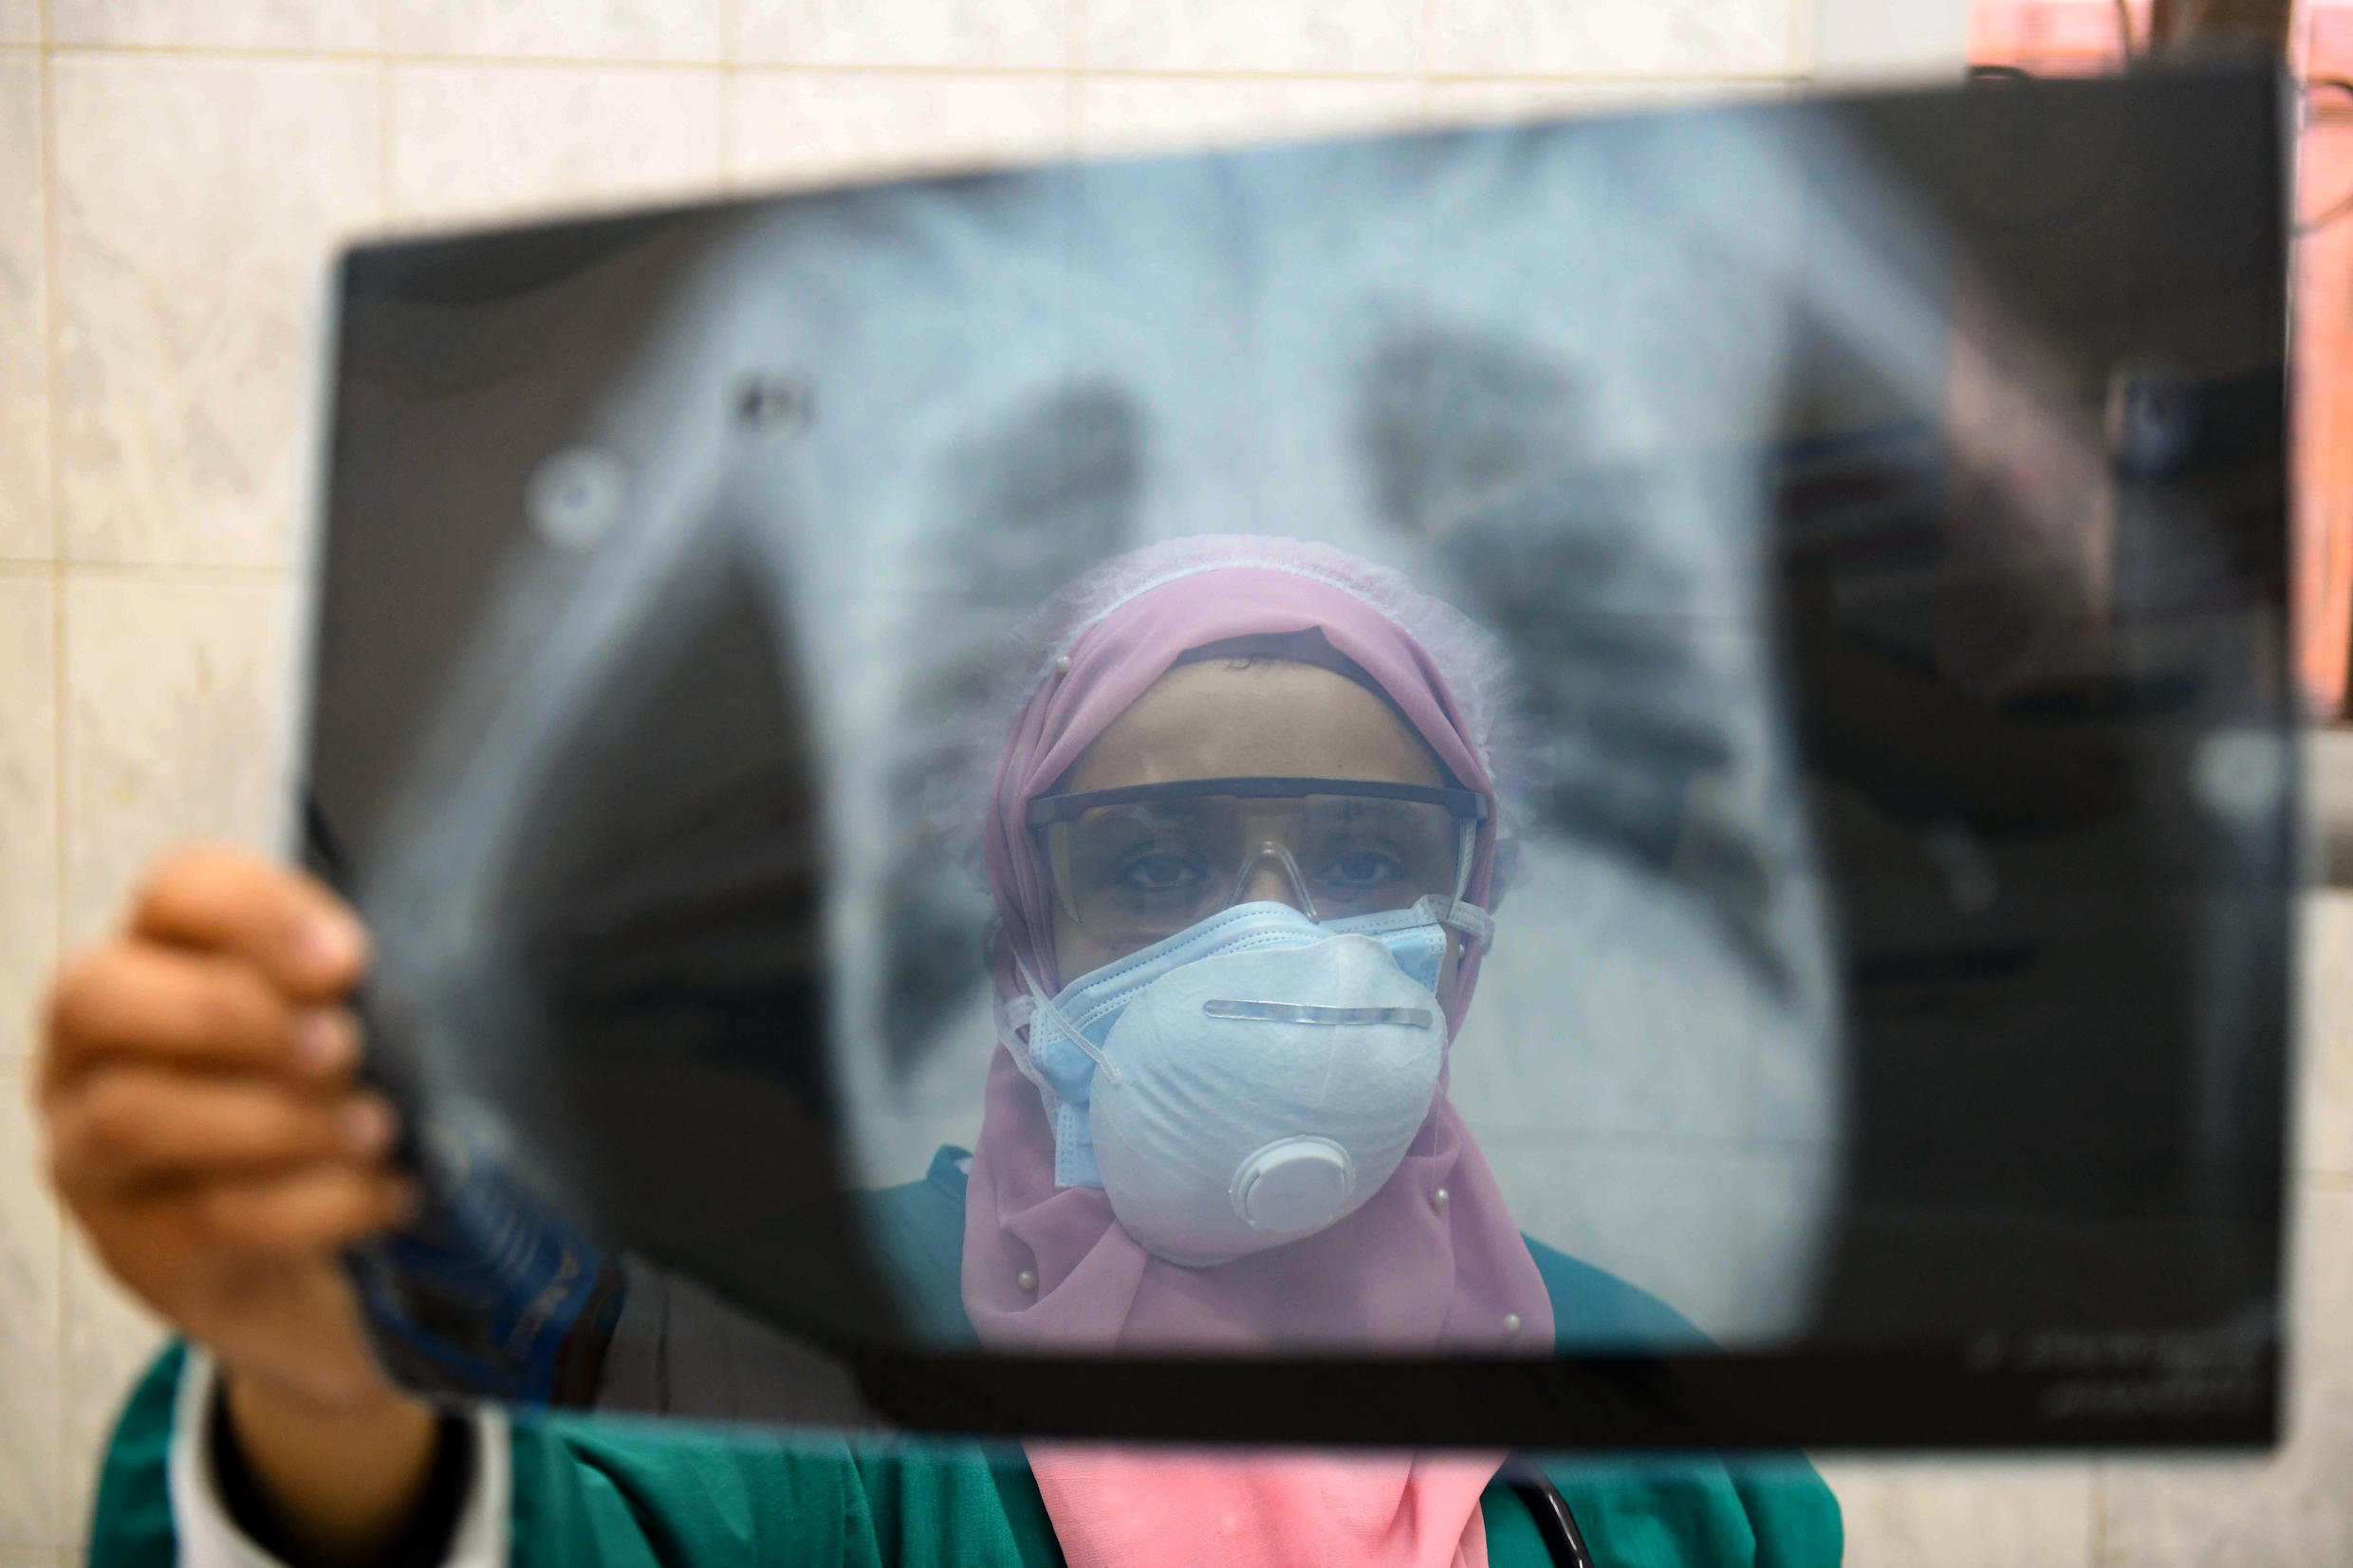 With a population of 100 million, Egypt is the Arab world's most populous country and doctors have been battling to prevent the coronavirus from taking hold